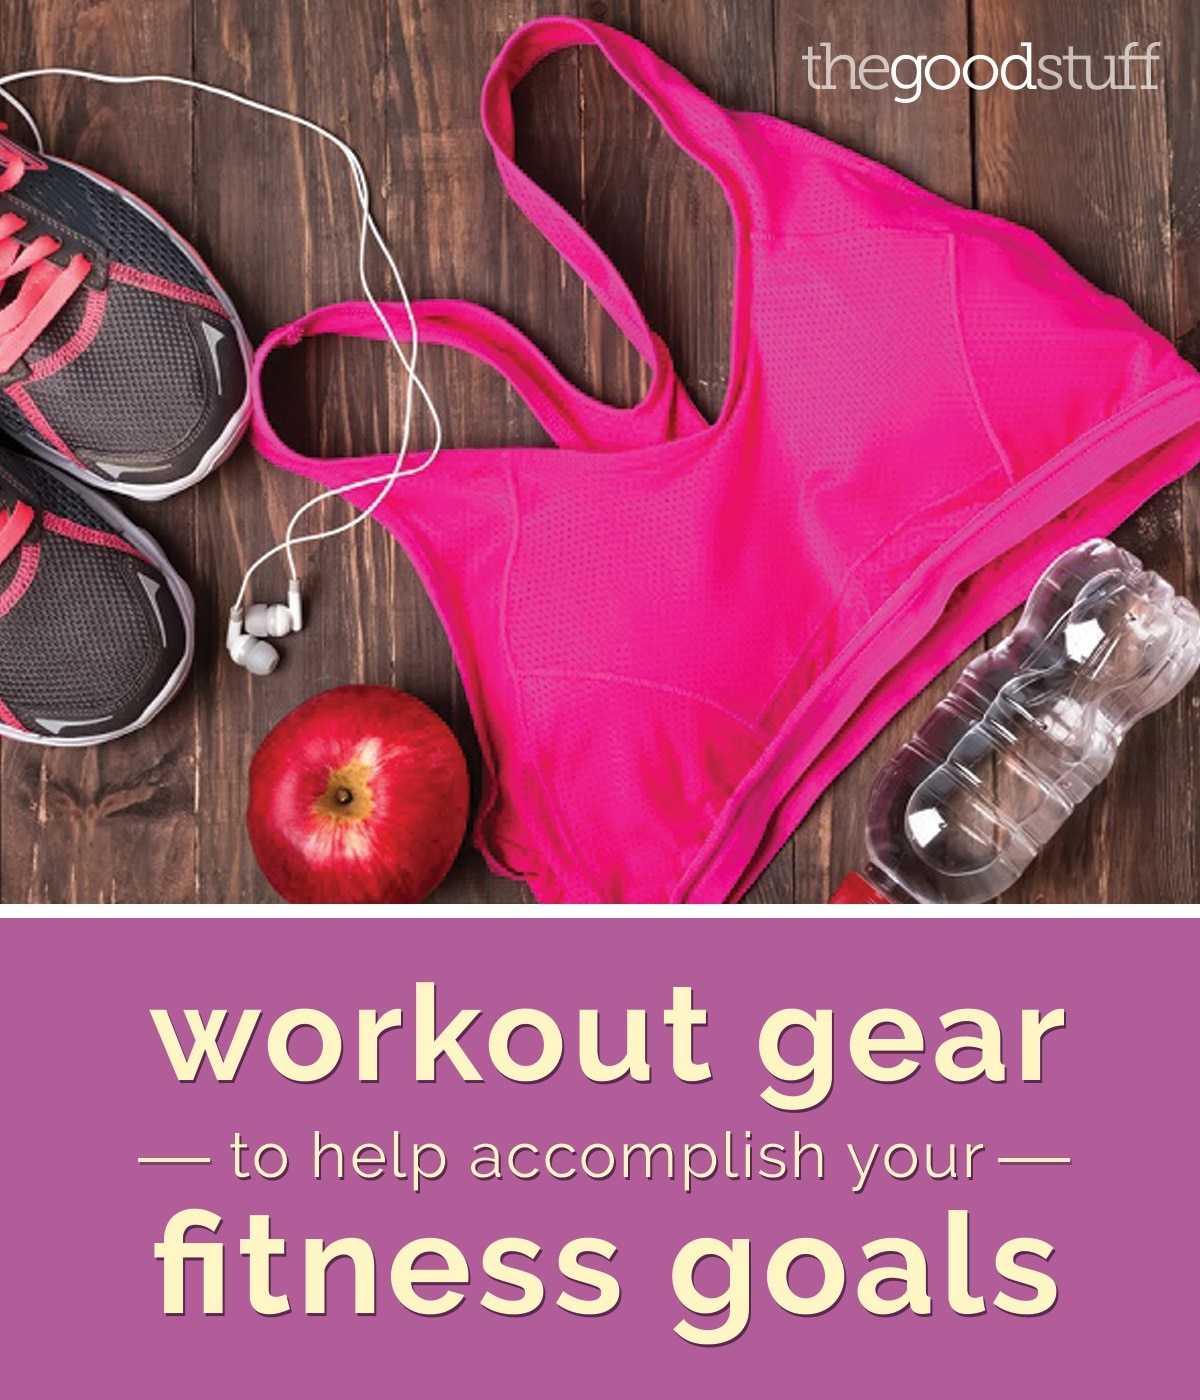 style-workout-gear